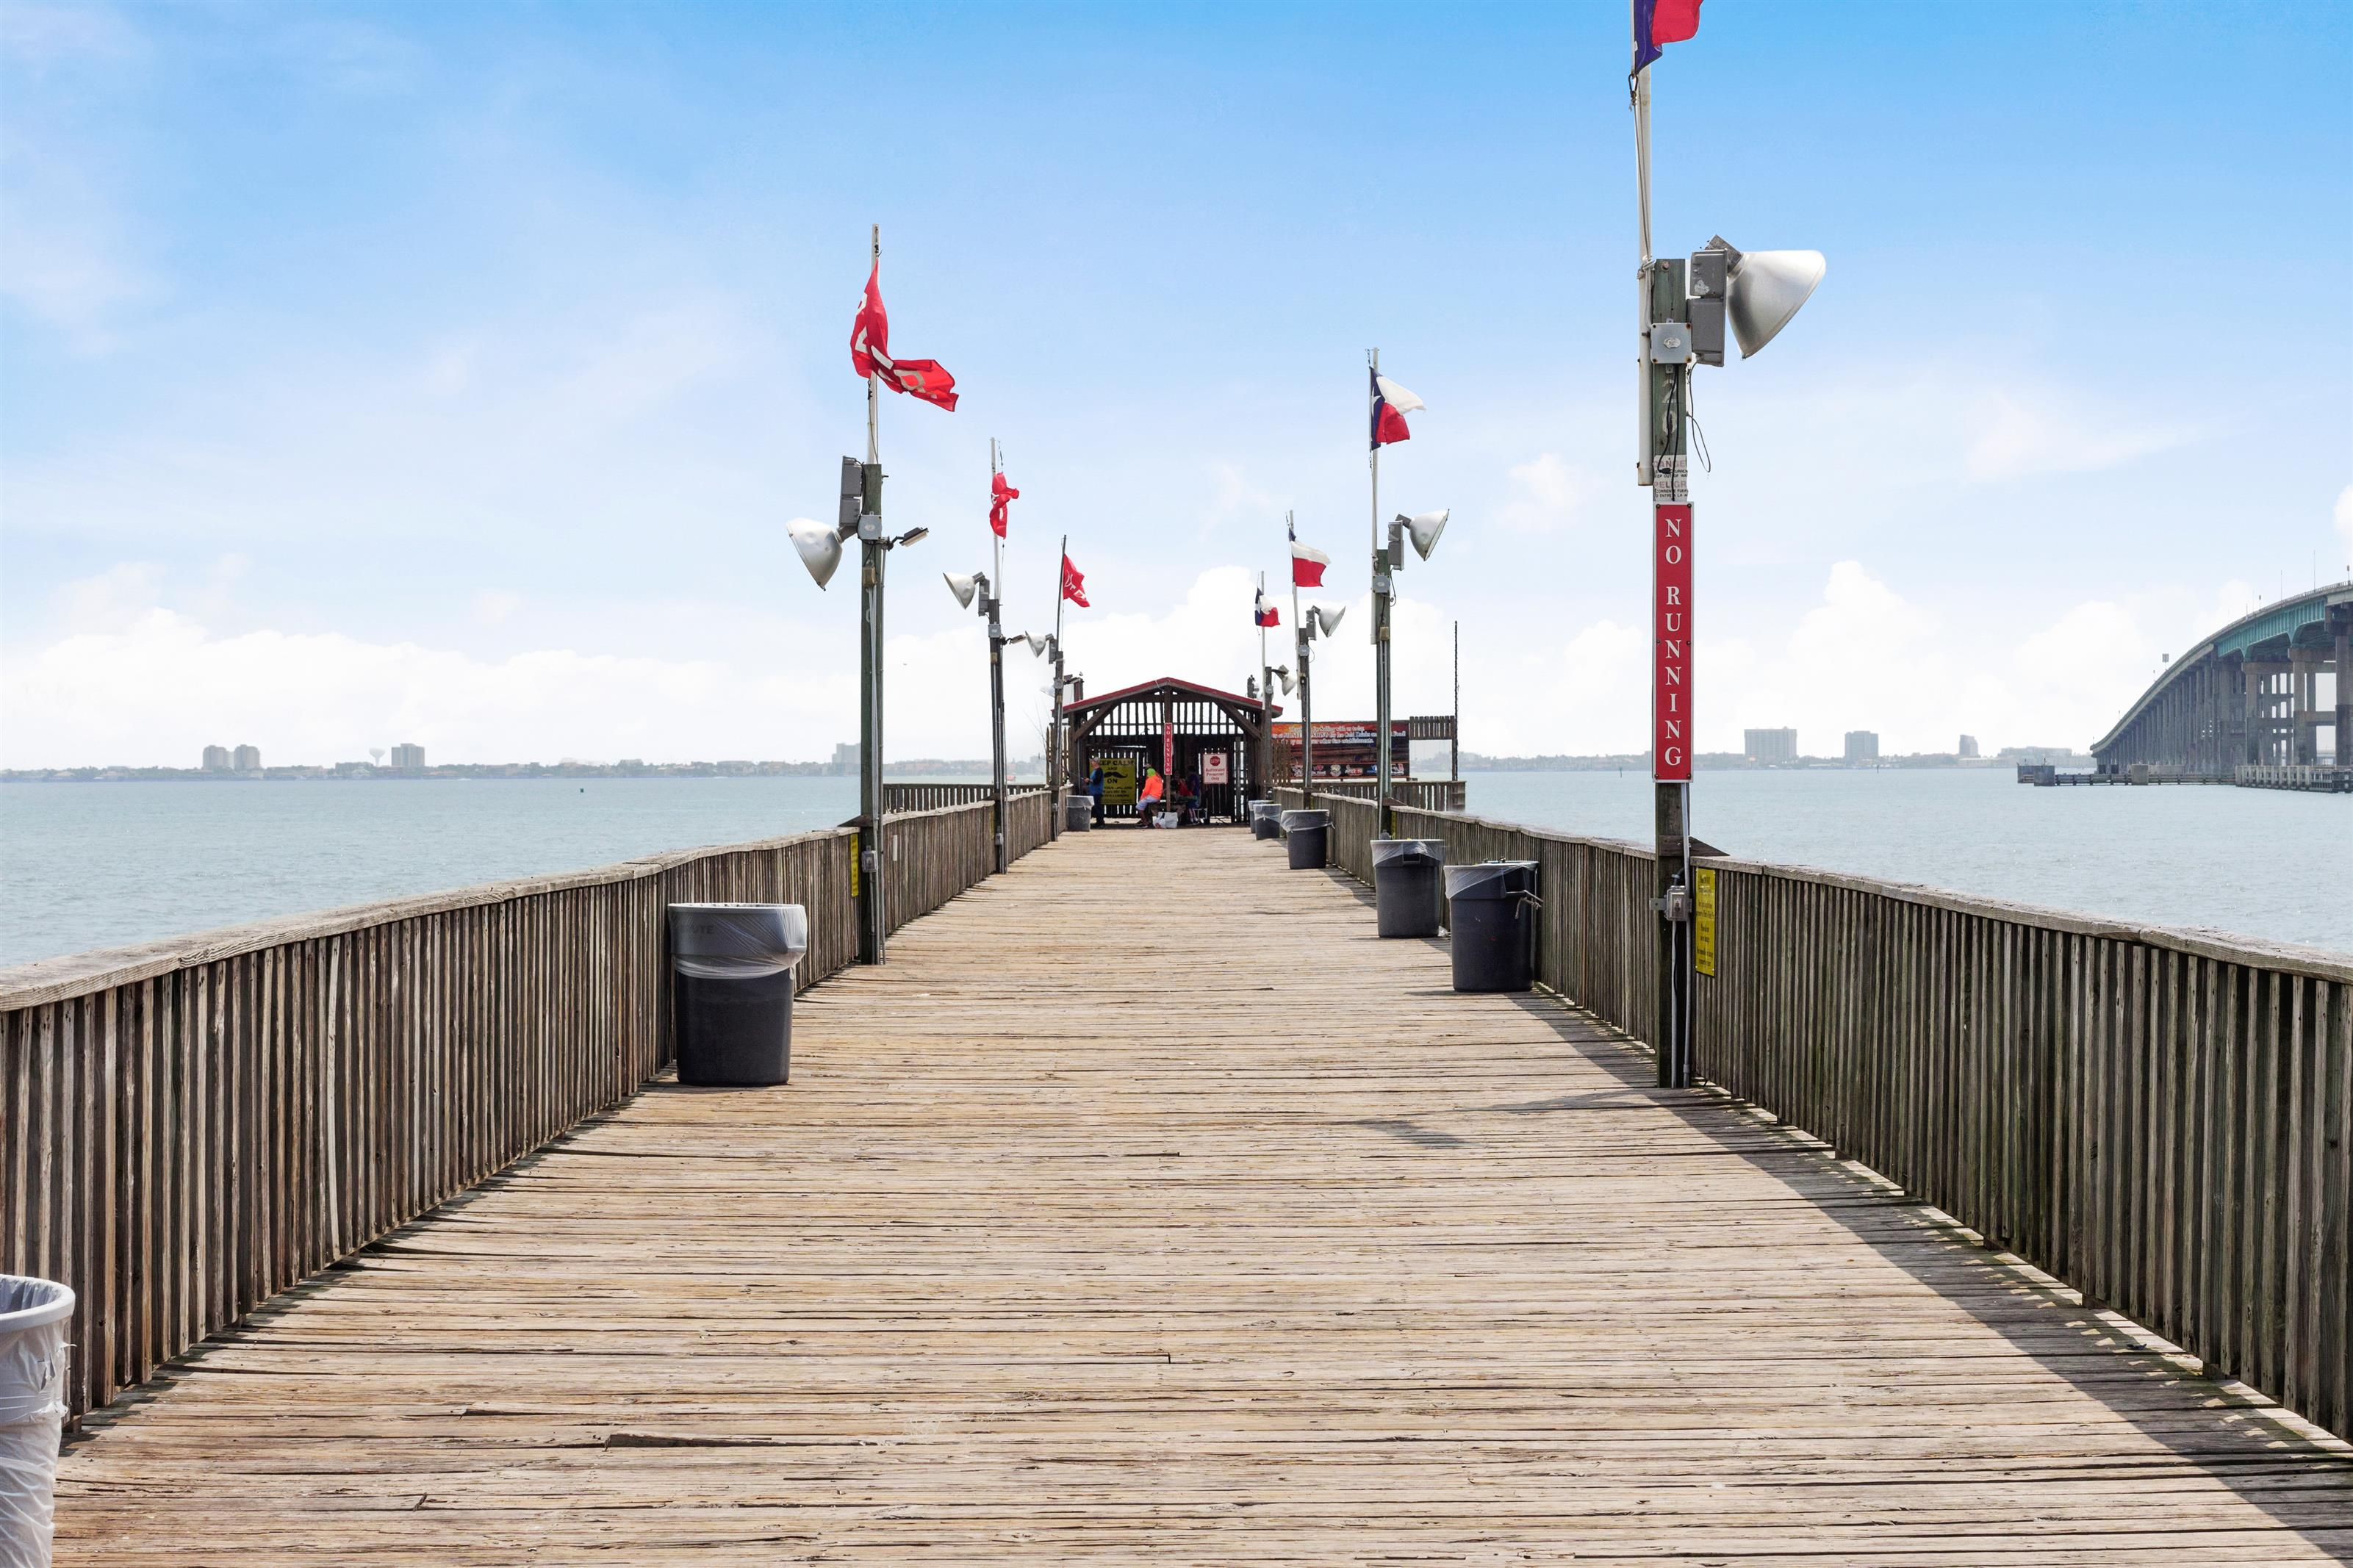 view of the Fishing Pier with flags, view of Causeway in the background